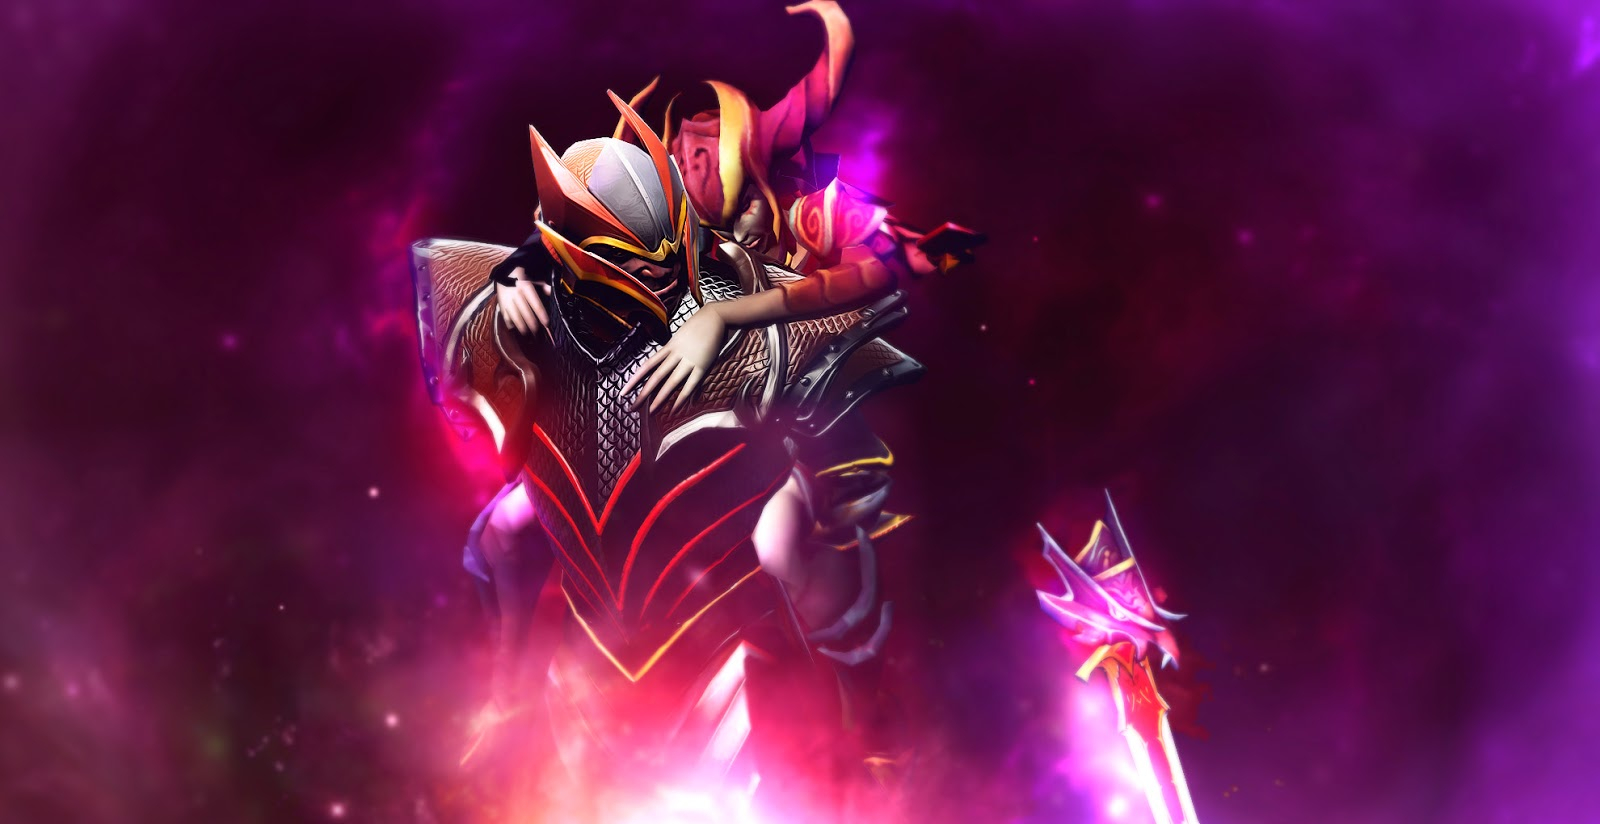 Dragon Knight Desktop Wallpaper For Computer Dota 2